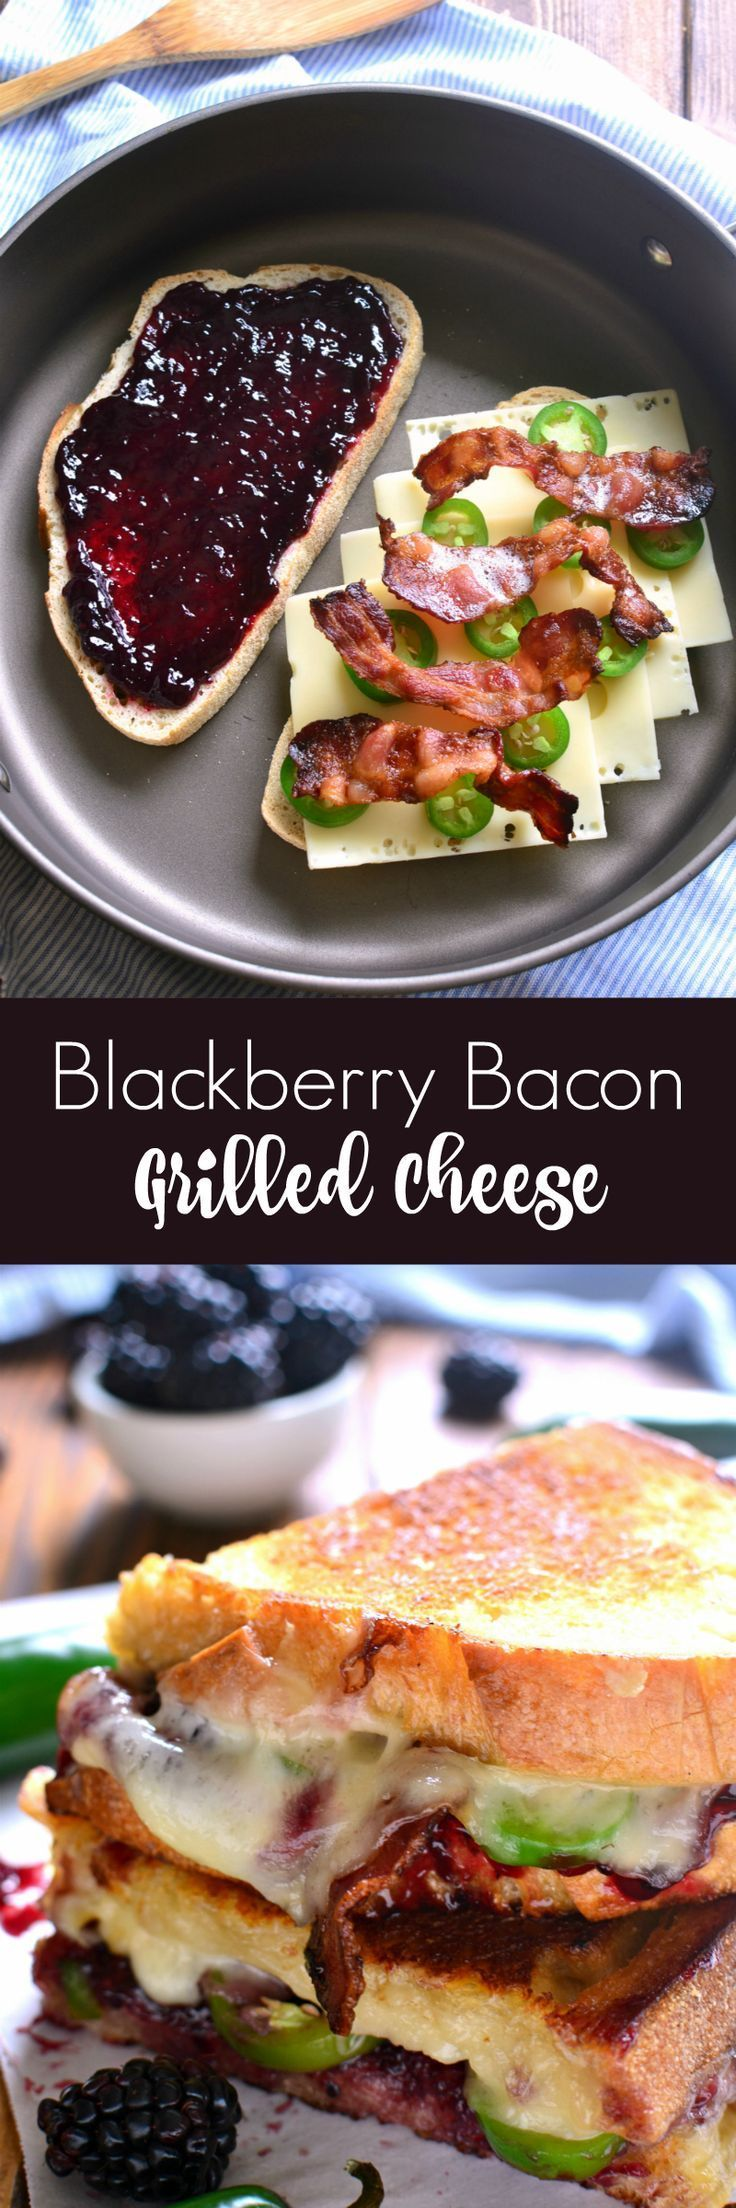 This Blackberry Bacon Grilled Cheese is the perfect combination of savory and sweet! Made with Swiss cheese, blackberry jam, fresh jalapeños, and crispy bacon, it's a must try for ALL sandwich lovers! (Pizza Grilled Cheese)